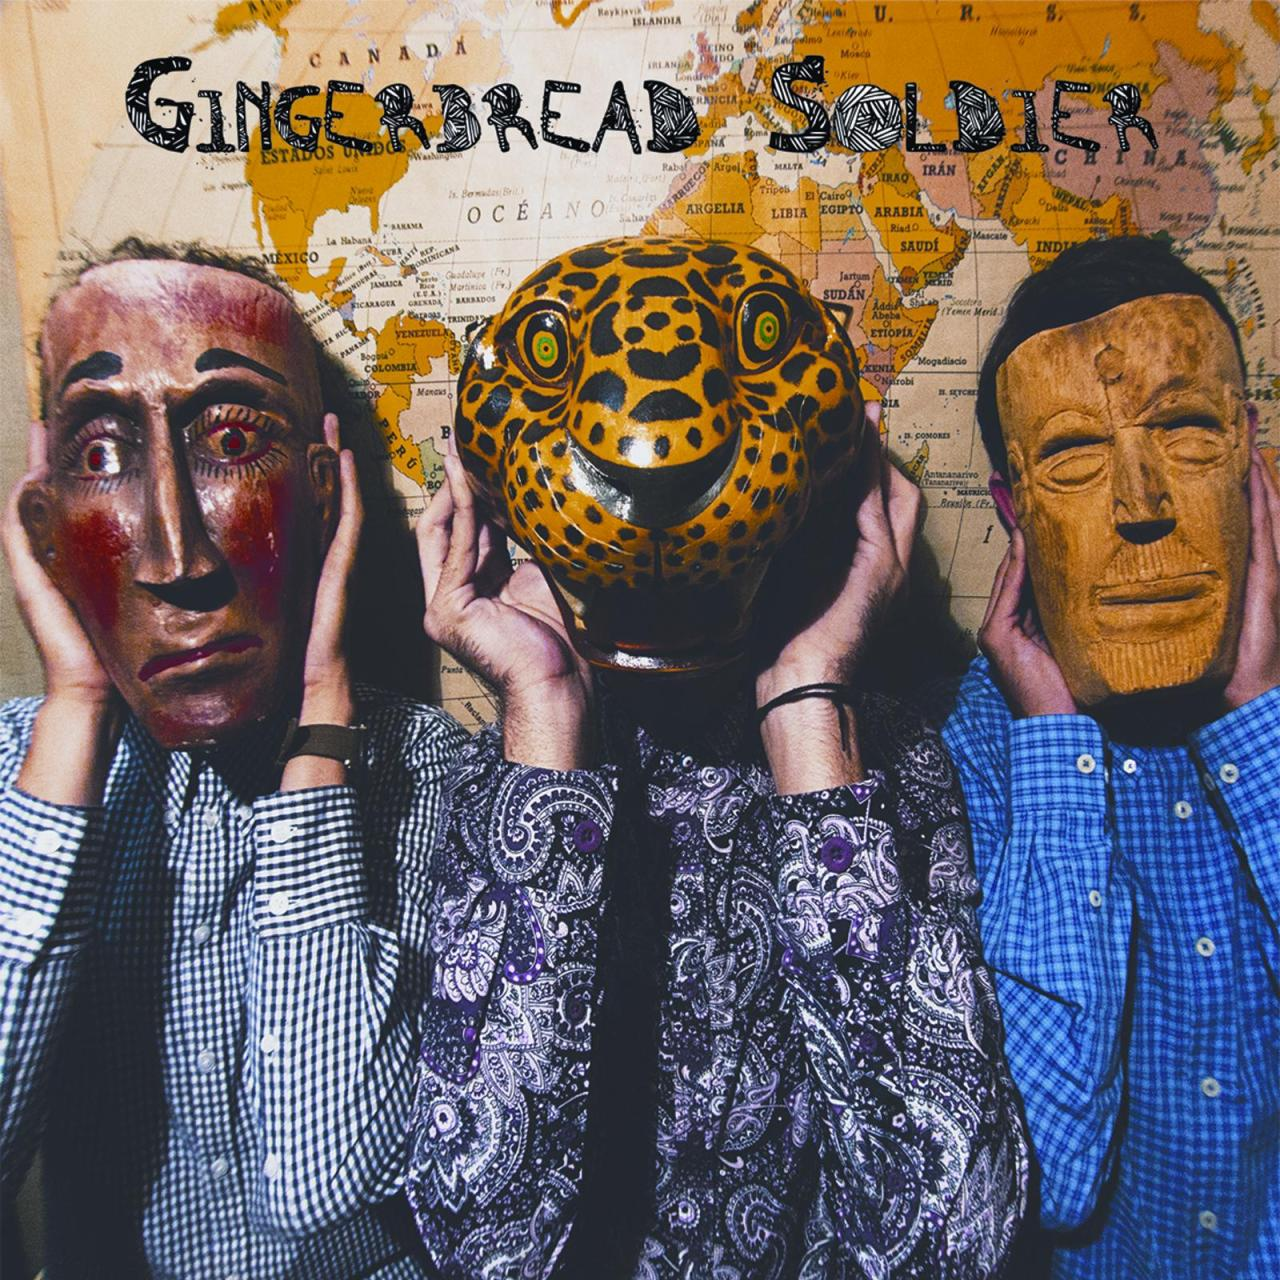 jungleindierock:  FULL ALBUM STREAM Gingerbread Soldier - Post​-​Jurassic  Excellent garage punk band from Santa Cruz de Tenerife in Canary Islands (Spain) signed to the independent label El Hombre Bala Records. Links: Bandcamp | Facebook | Twitter